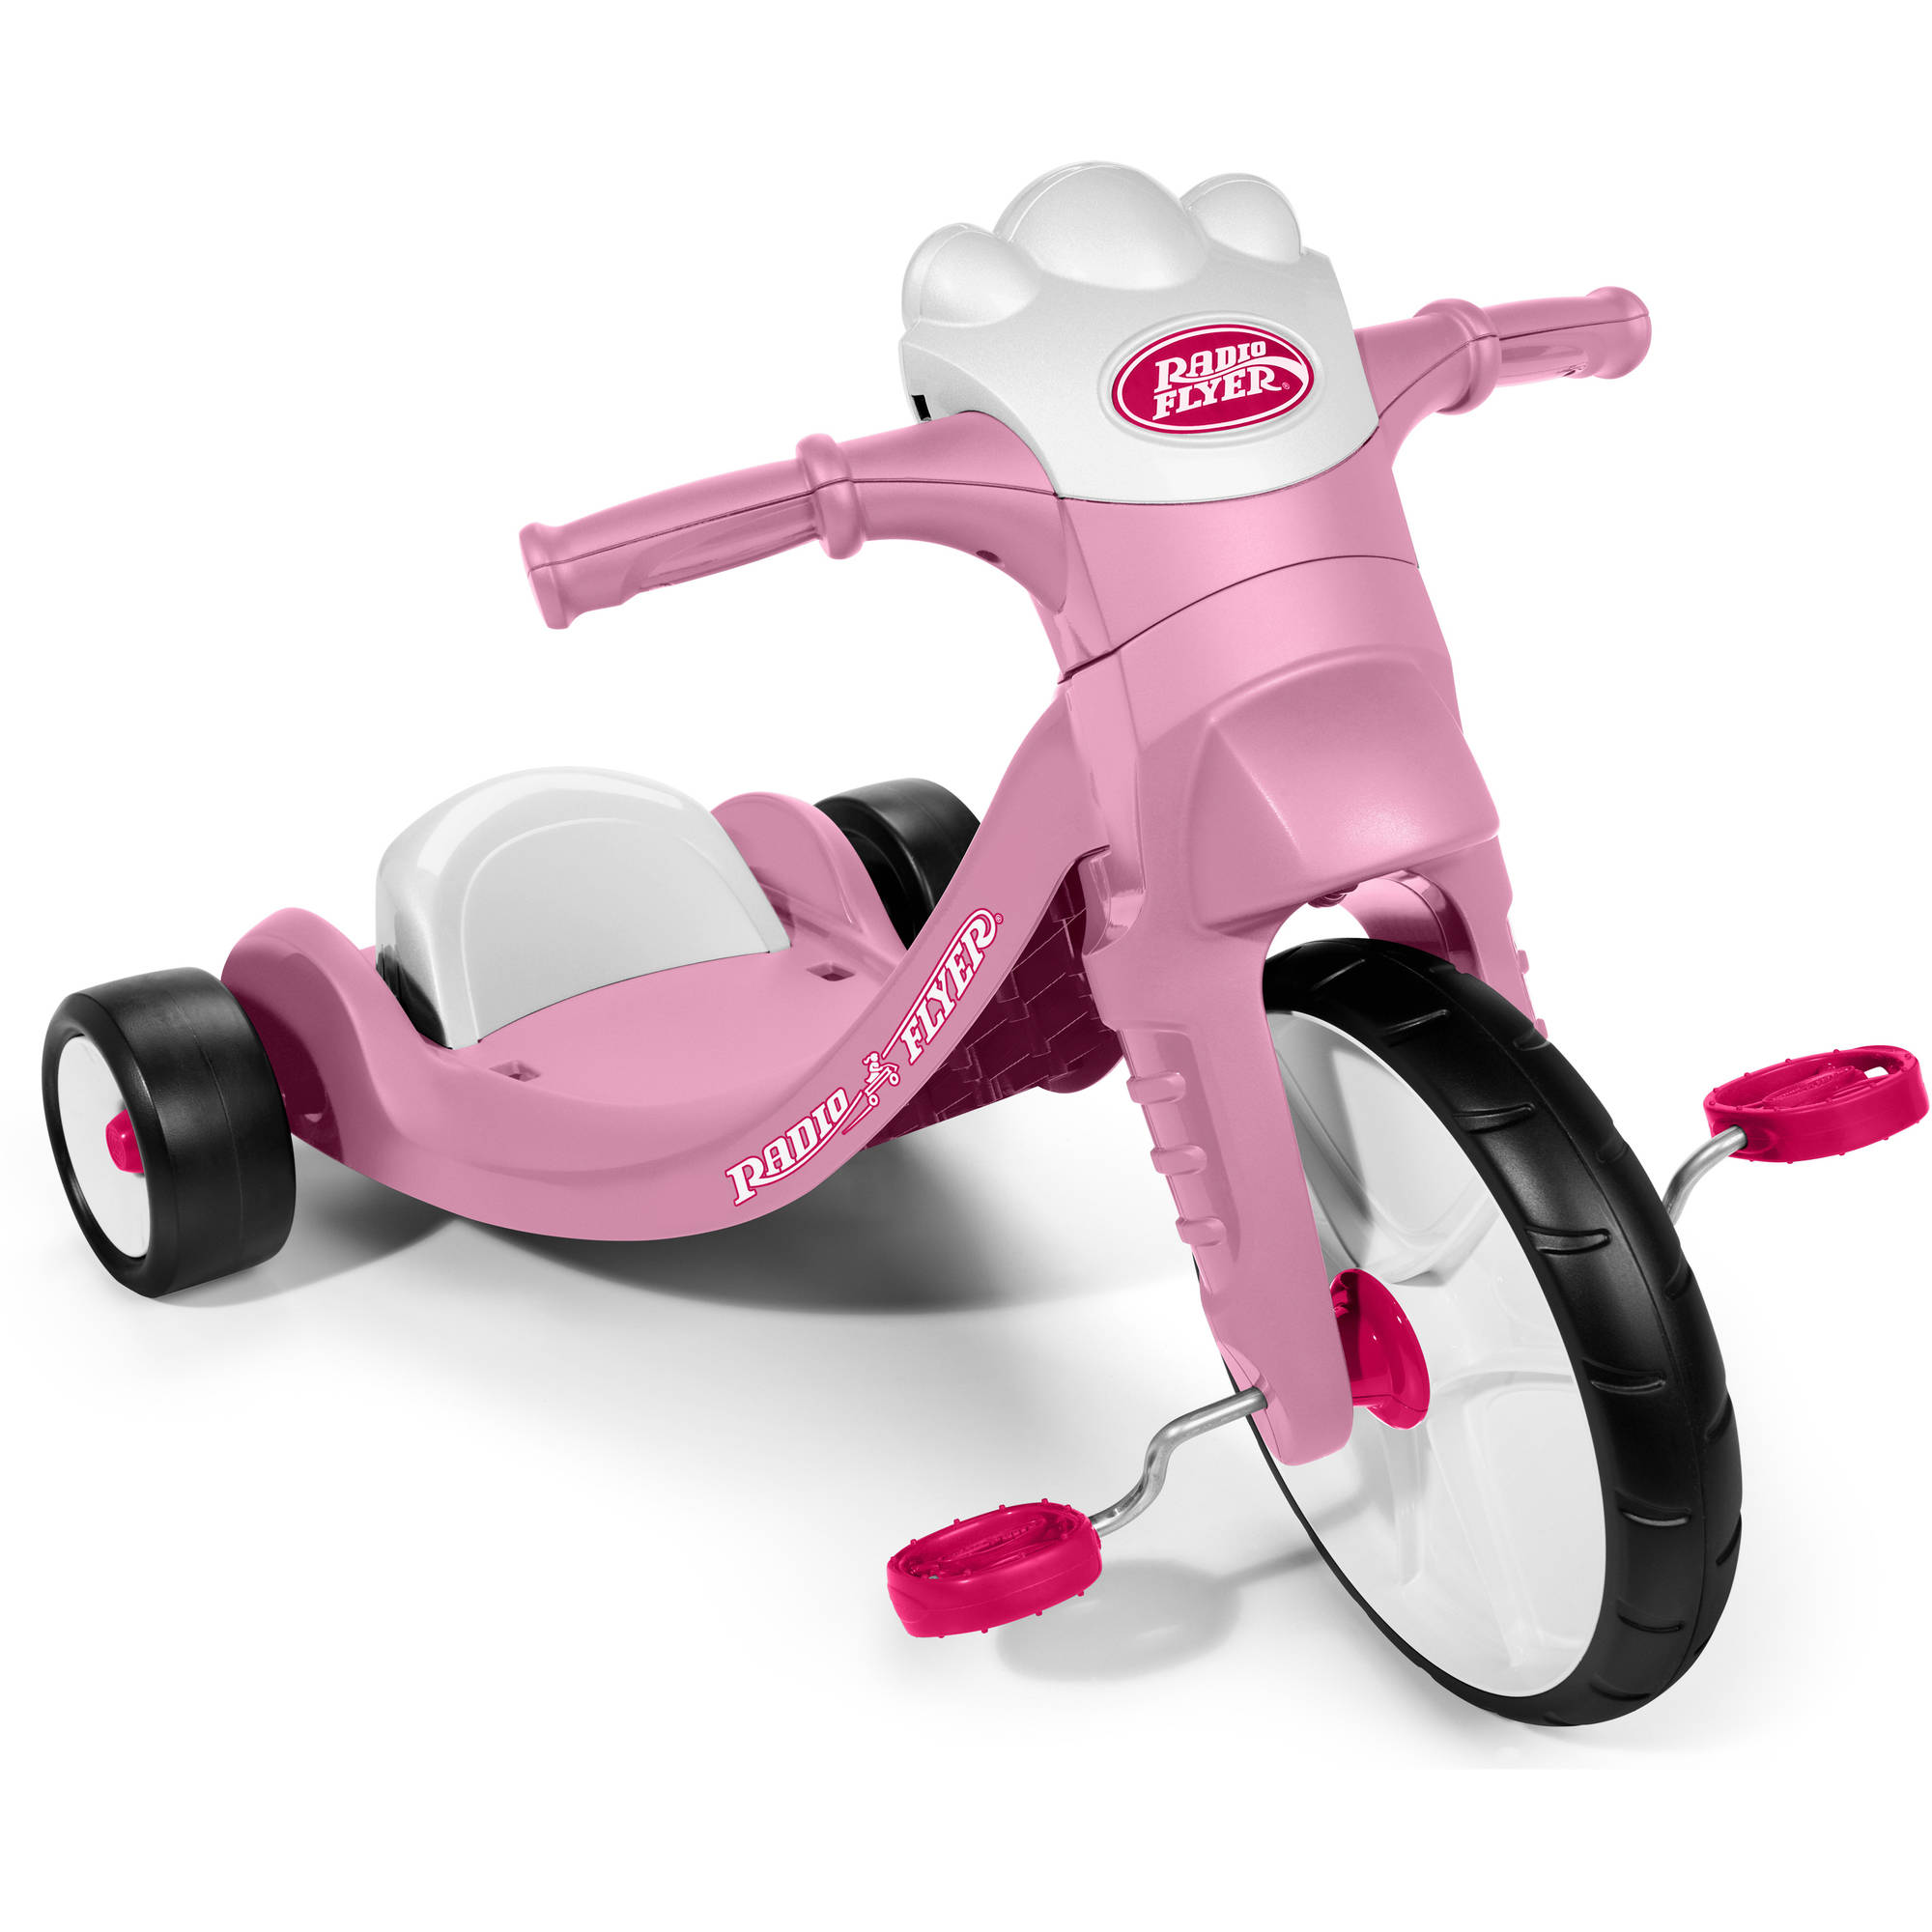 Radio Flyer Bike >> Radio Flyer My First Big Flyer With Lights Sounds Chopper Tricycle Red